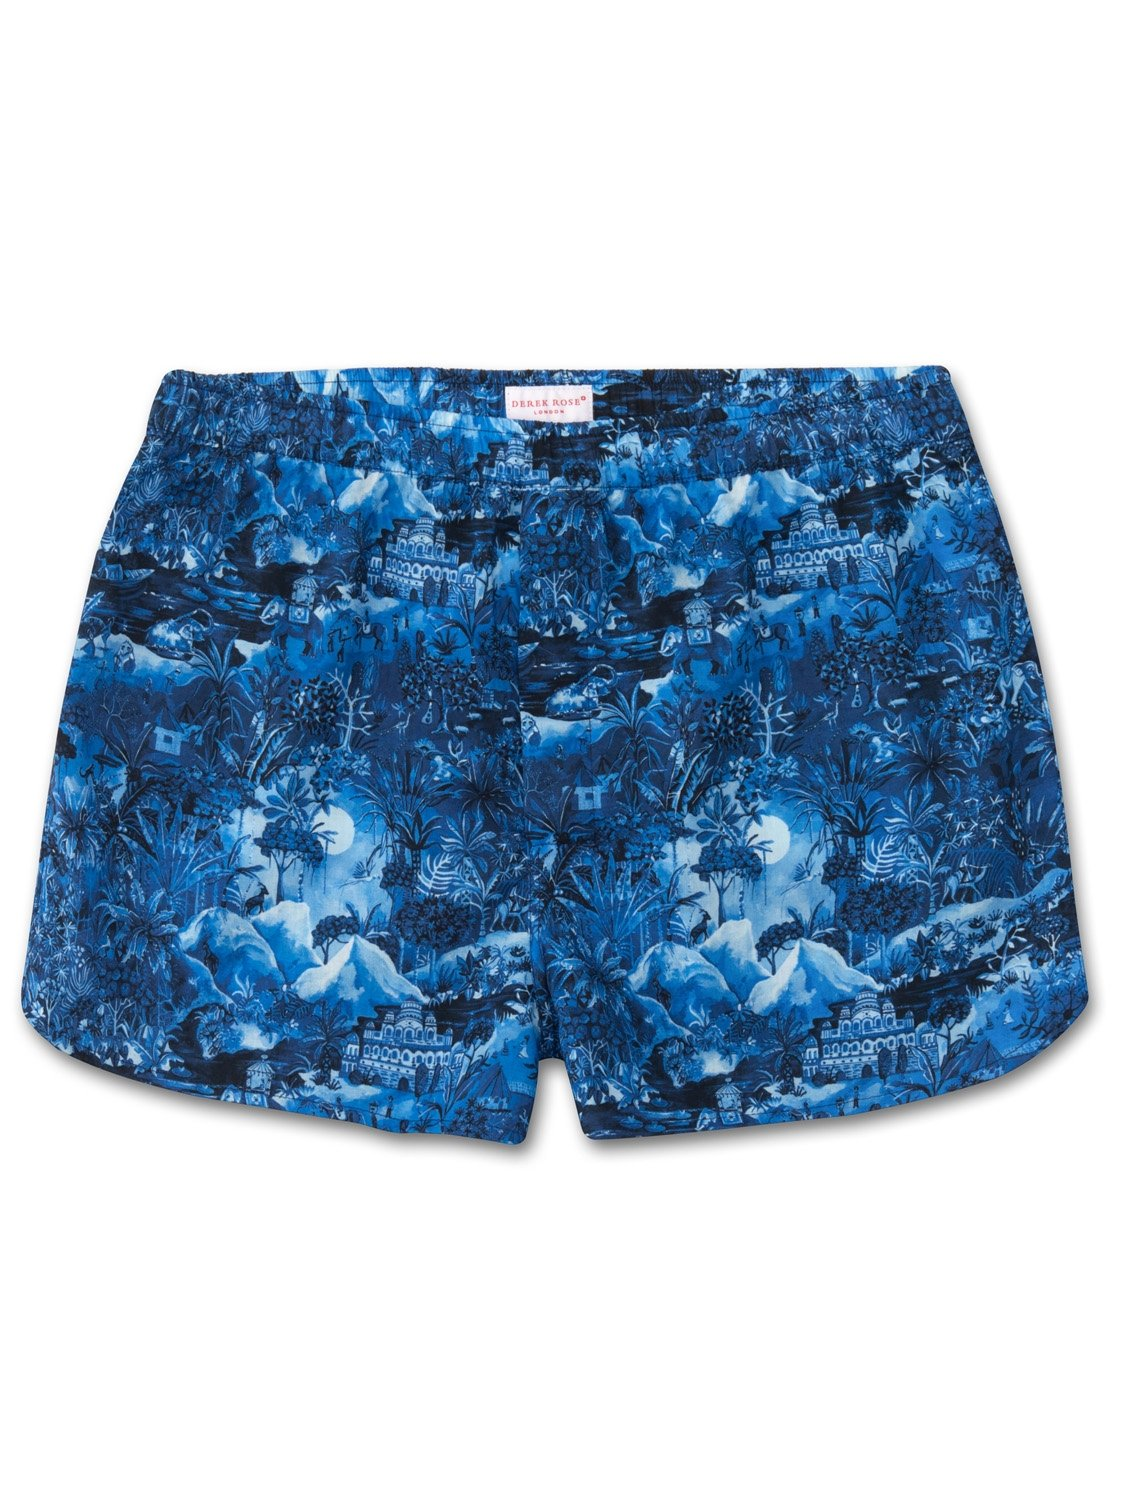 Men's Modern Fit Boxer Shorts Ledbury 10 Cotton Batiste Blue